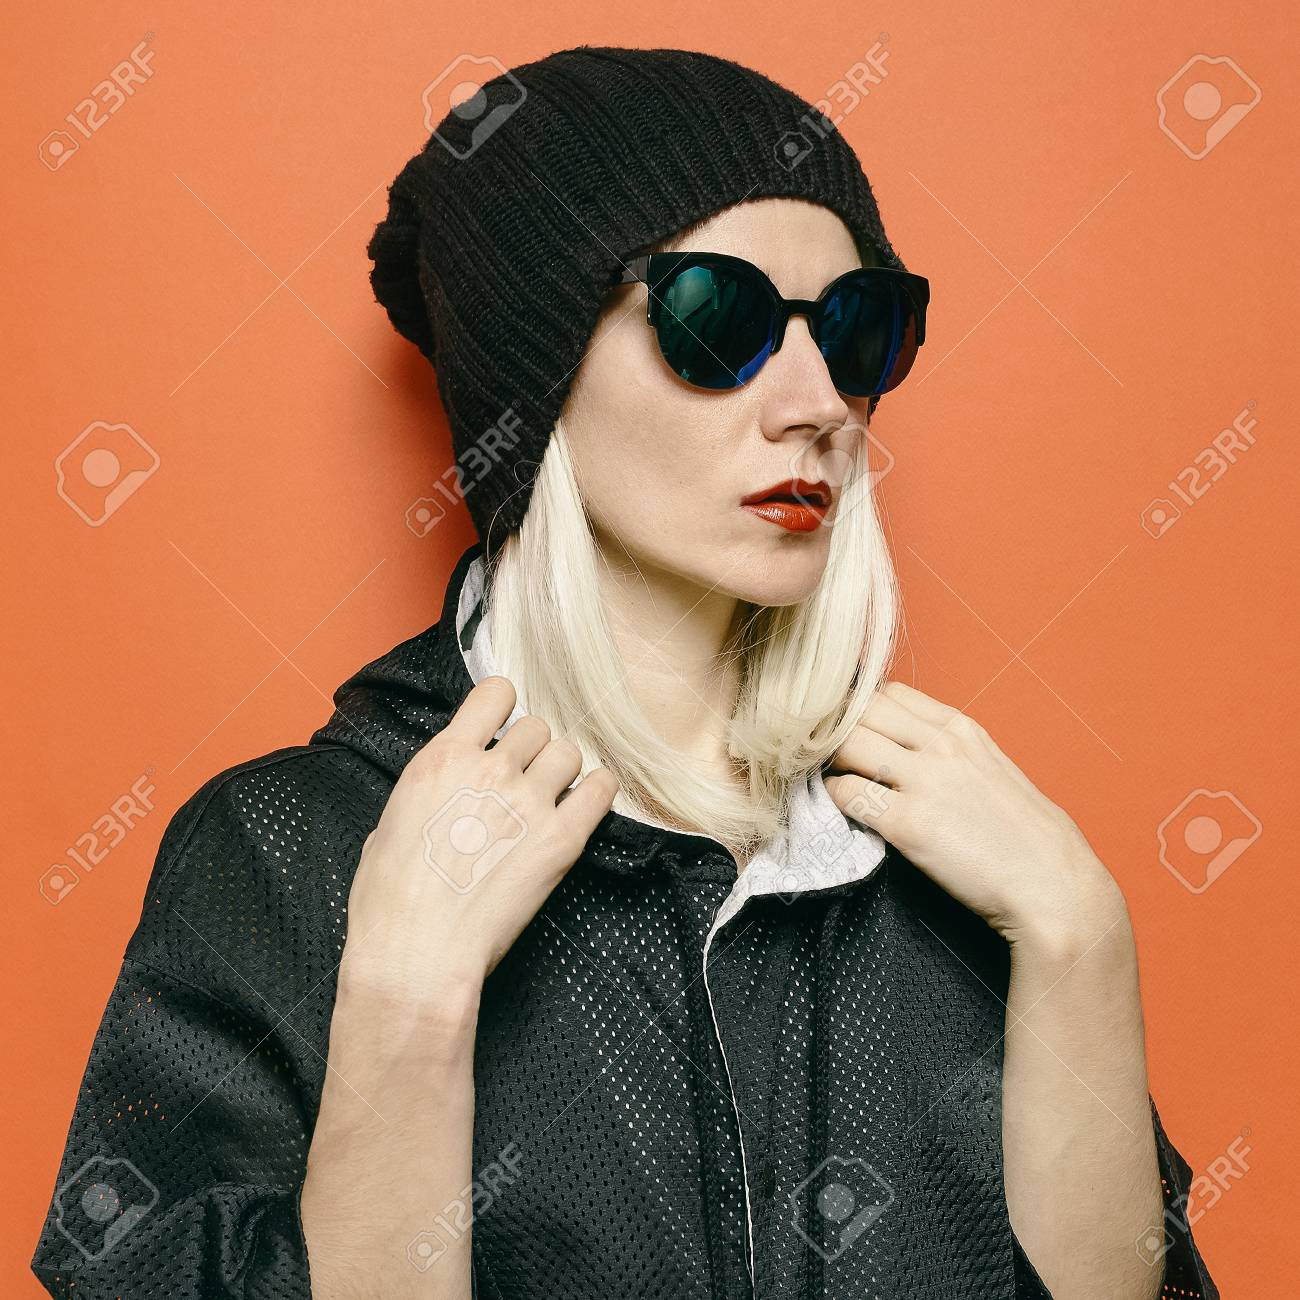 Hipster Blonde Model Swag Tomboy Style. Beanie Hat Stock Photo - 74377505 fe71ecb5c81